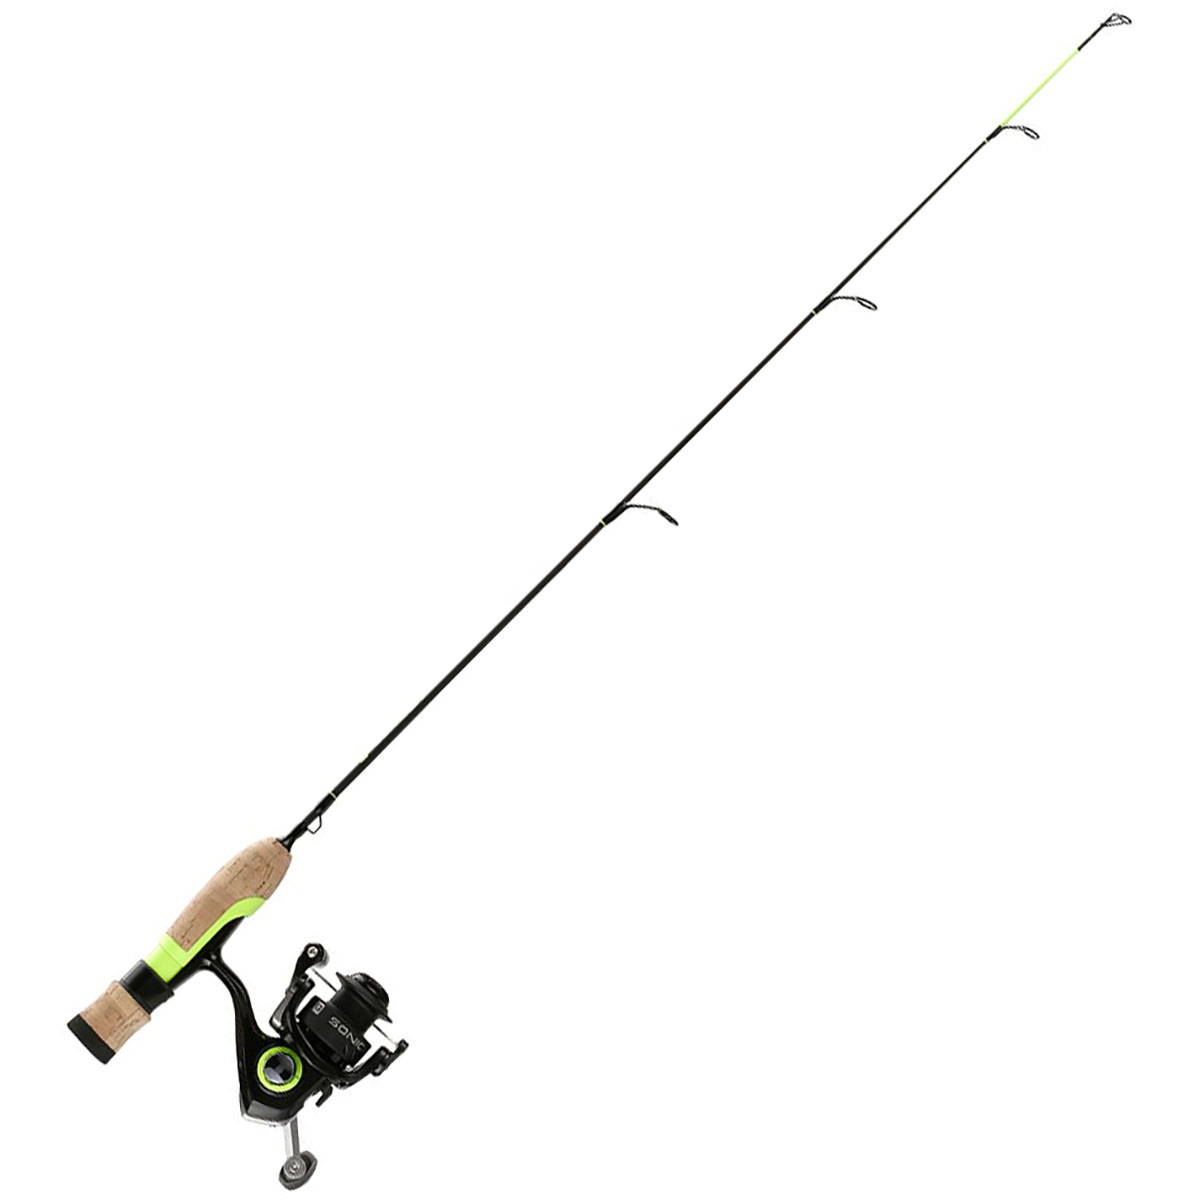 13 Fishing SoniCor Ice Spinning Combo